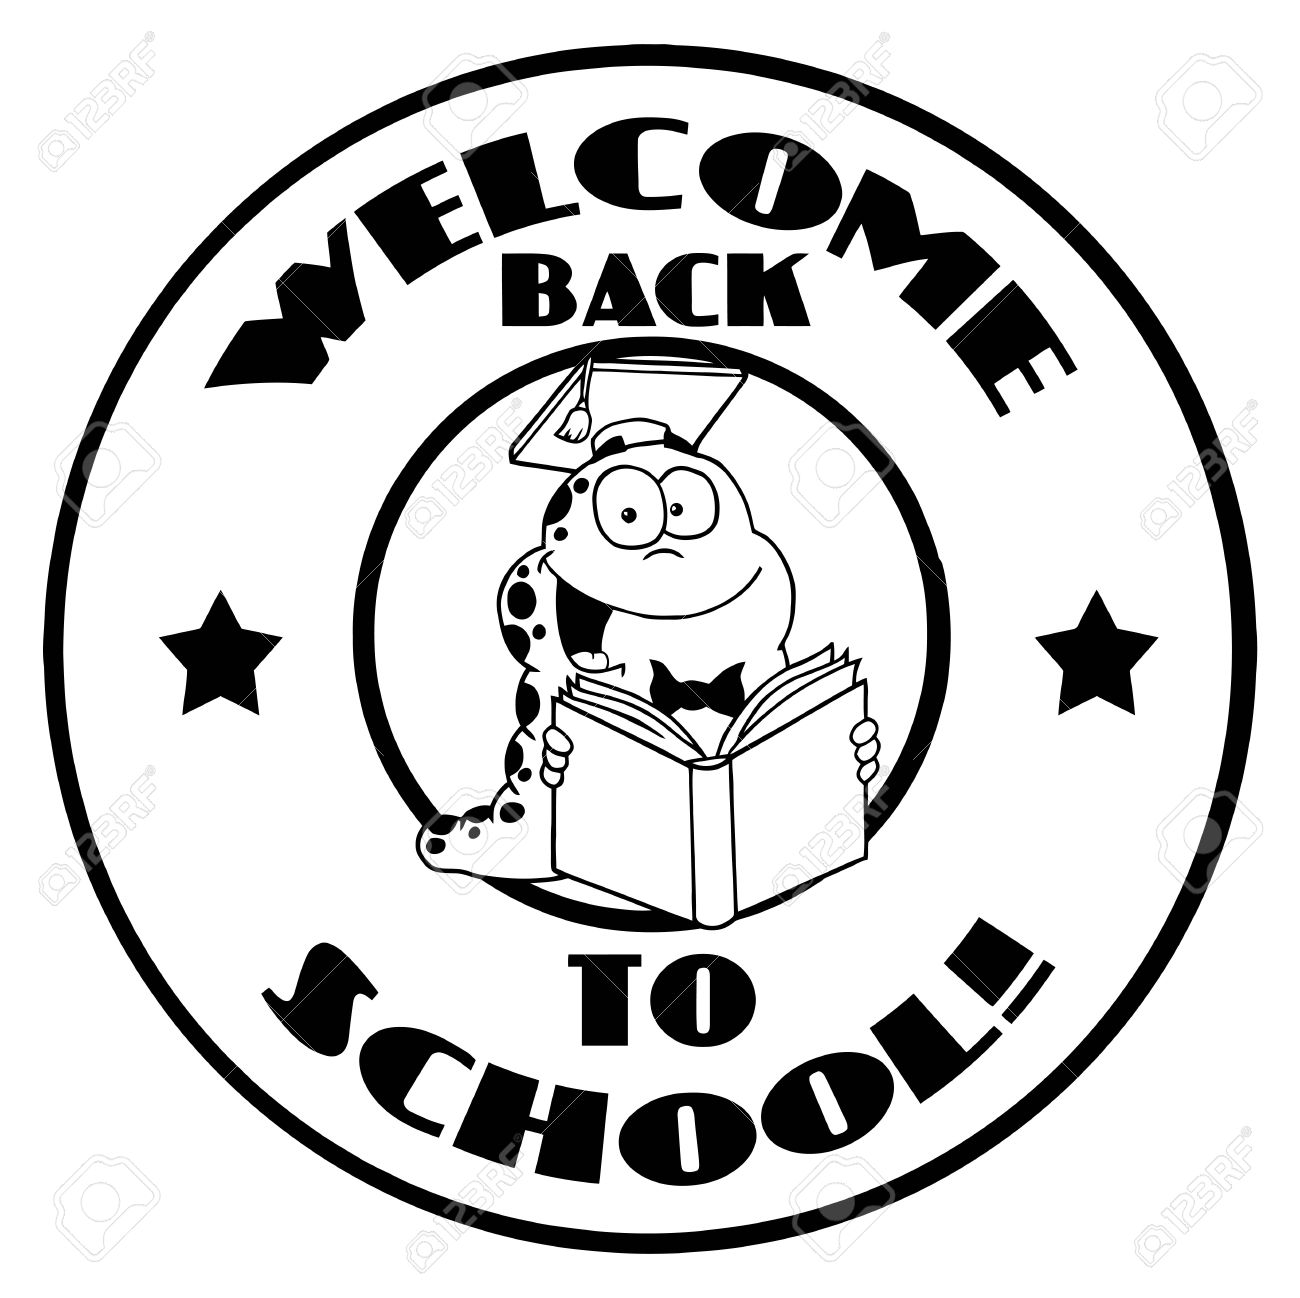 Welcome Back Clipart Black And White.